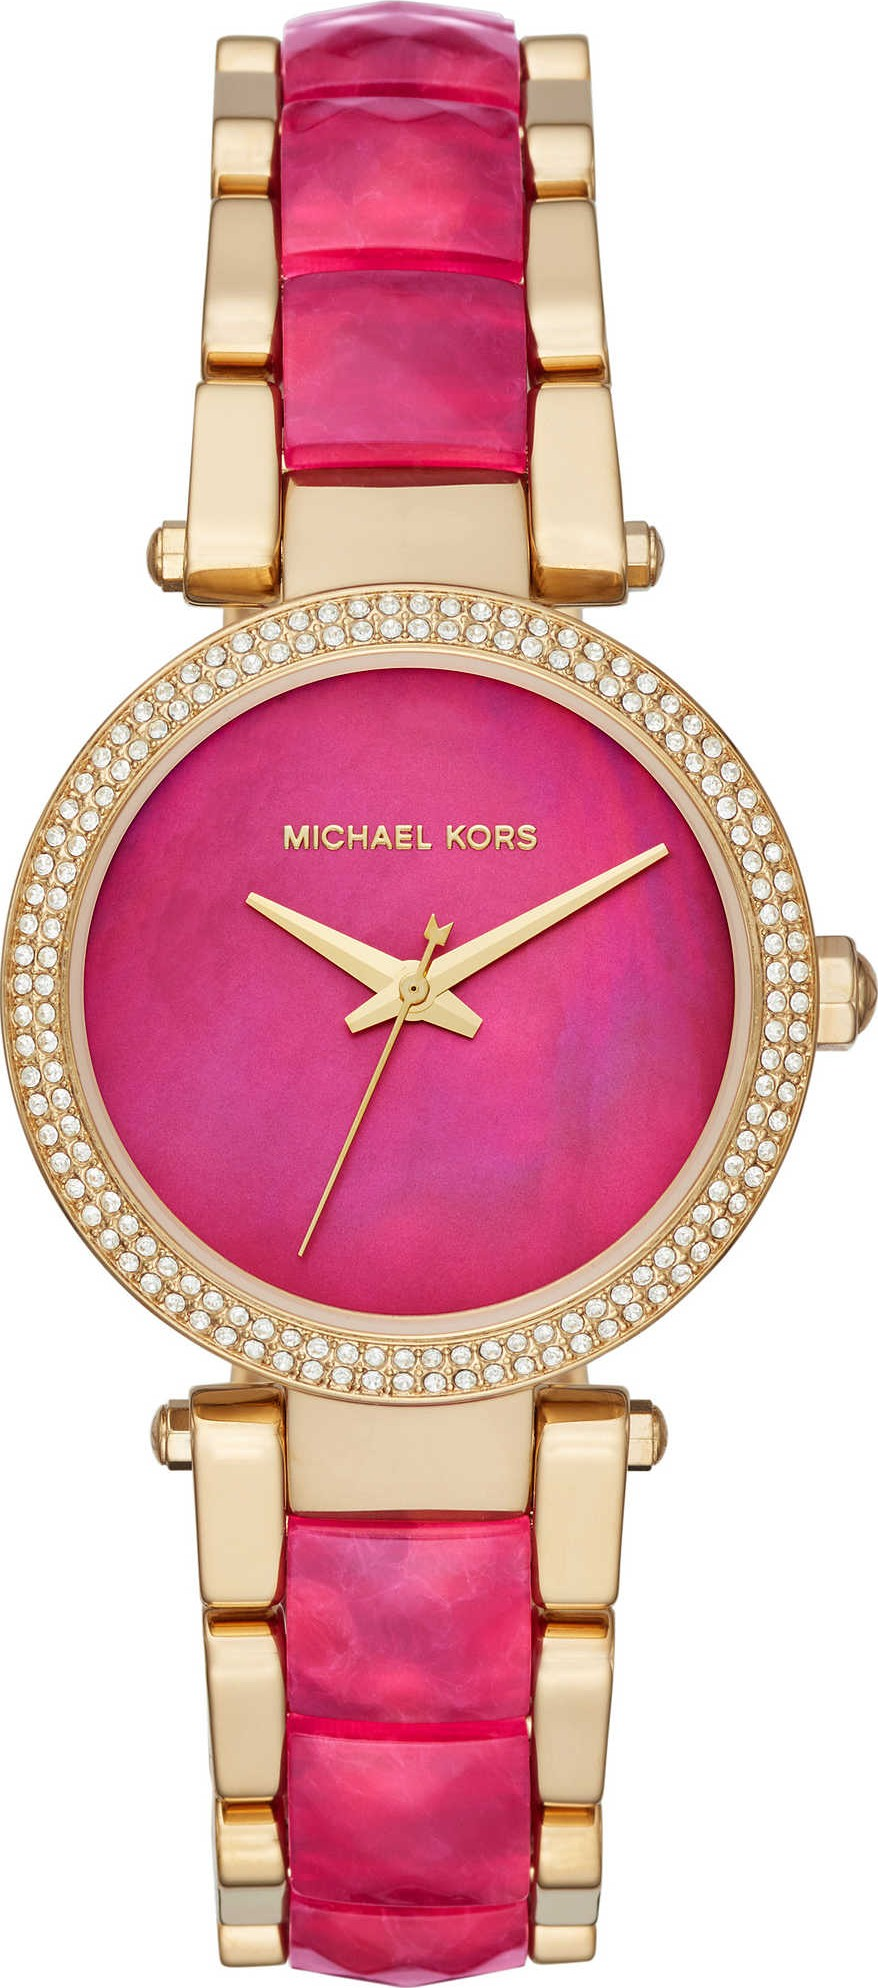 92a5a56ebe3 Michael Kors MK6490 Parker Gold-Tone Watch 33mm